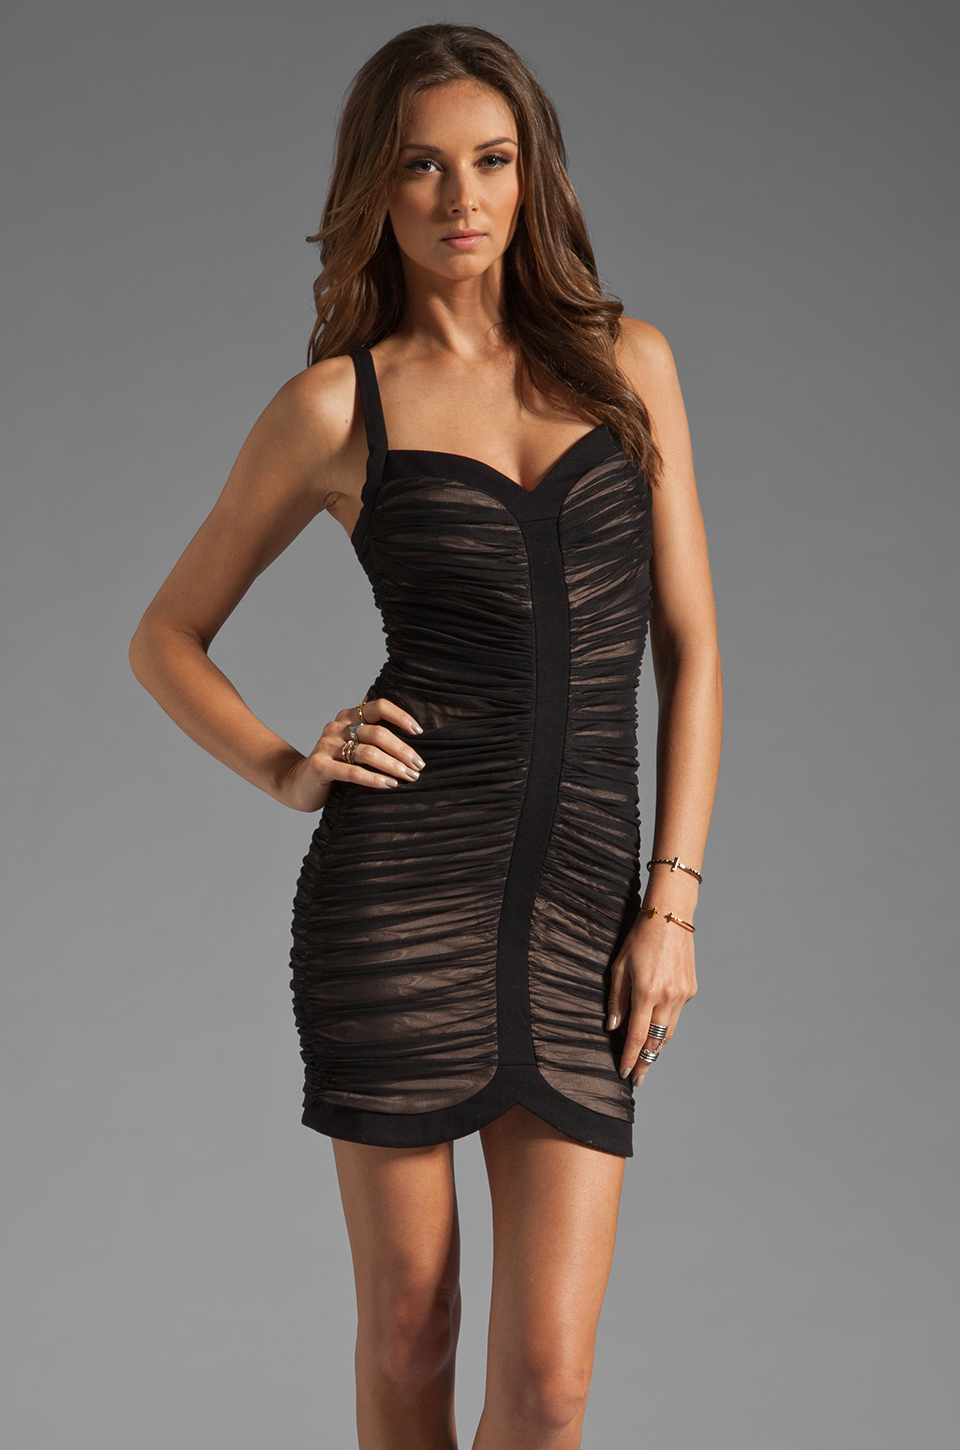 Bcbgmaxazria Mini Cocktail Dress in Black  Lyst